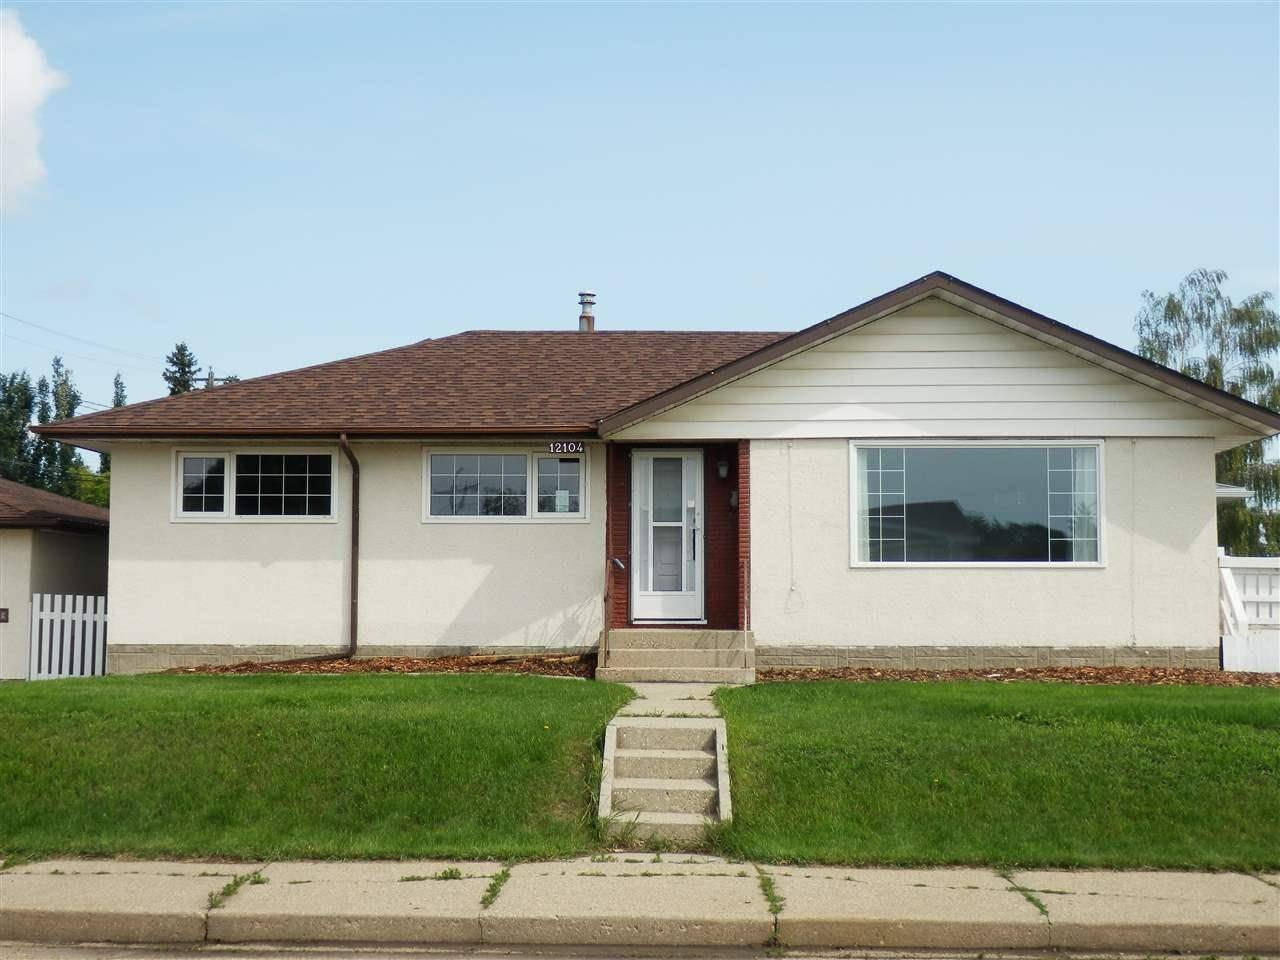 House for sale at 12104 131 Ave Nw Edmonton Alberta - MLS: E4162657